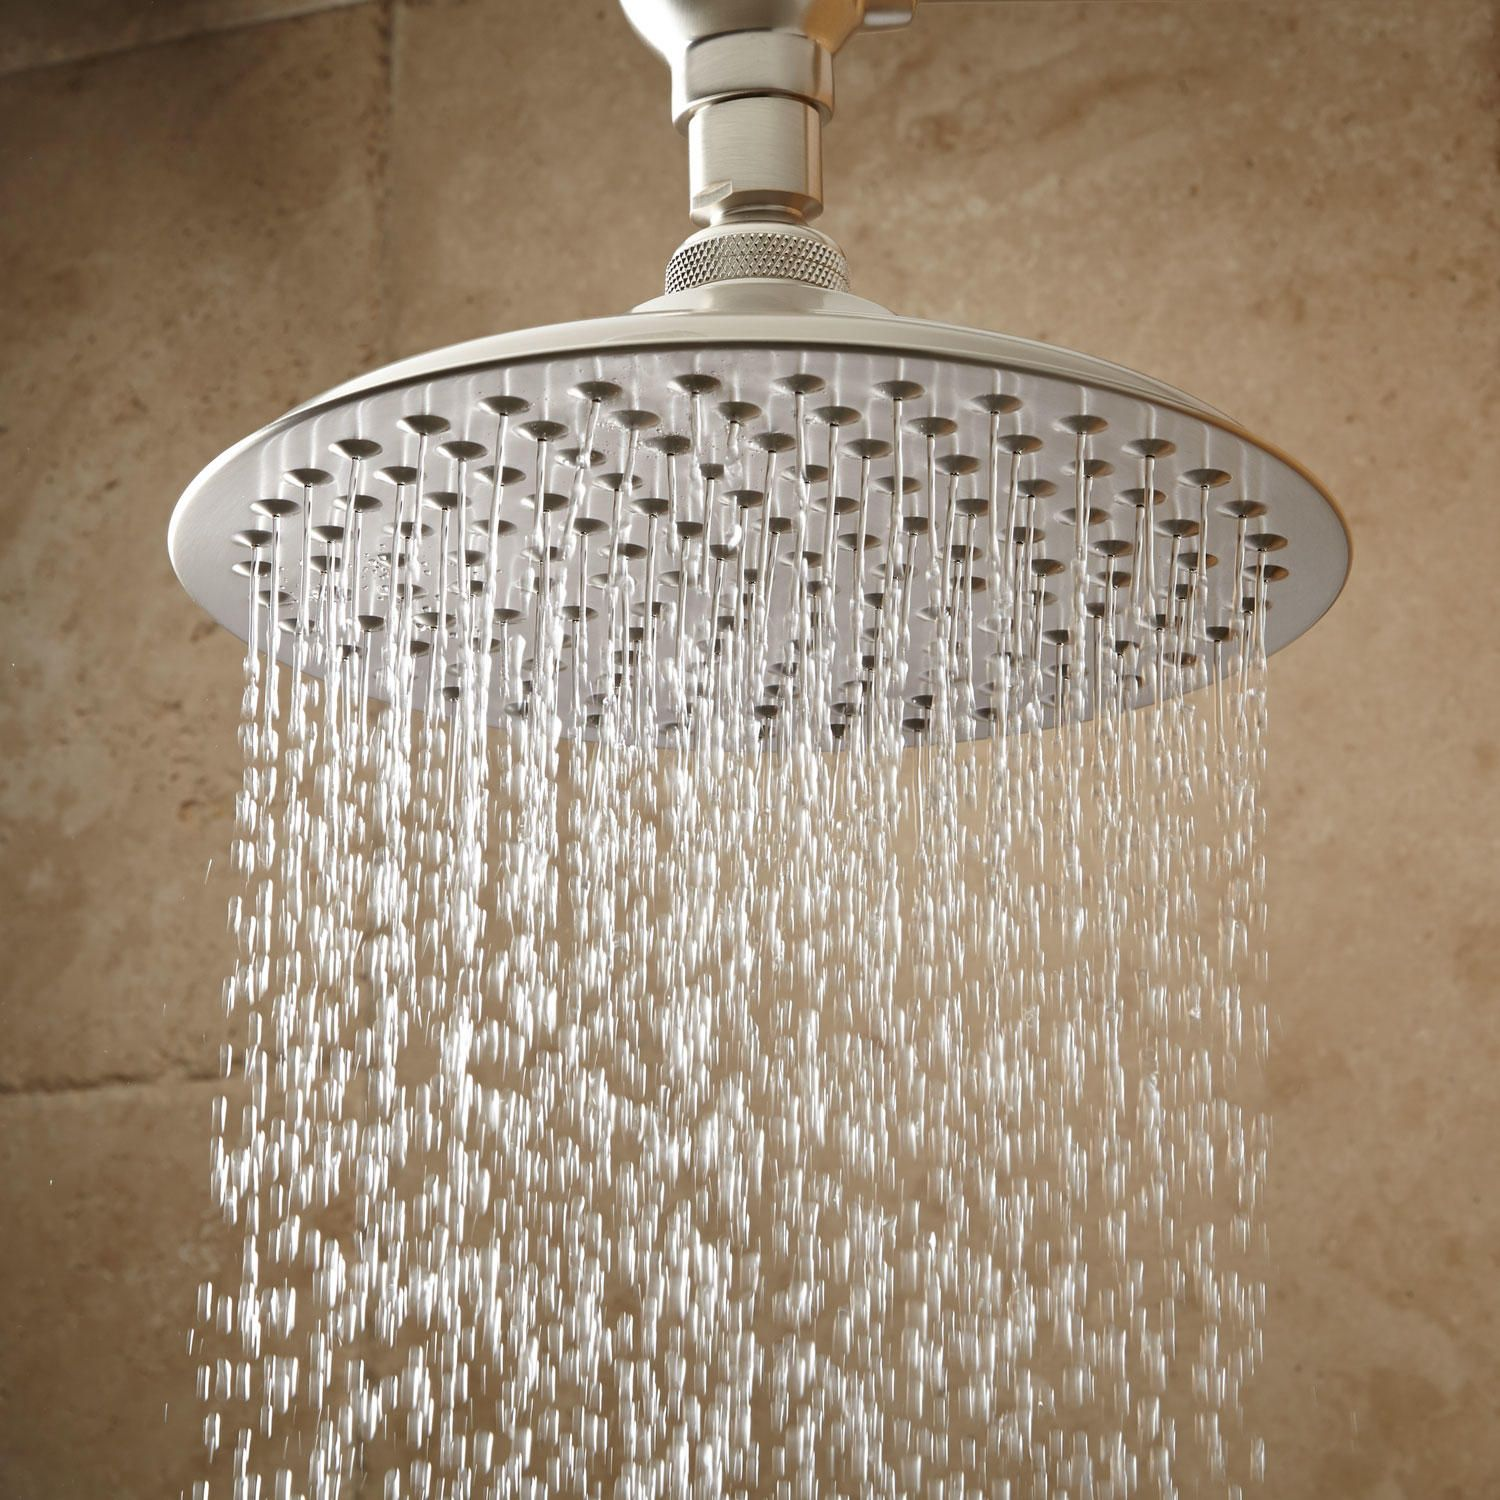 8 Bostonian Rainfall Shower Head In 12 Ornate Arm In Chrome